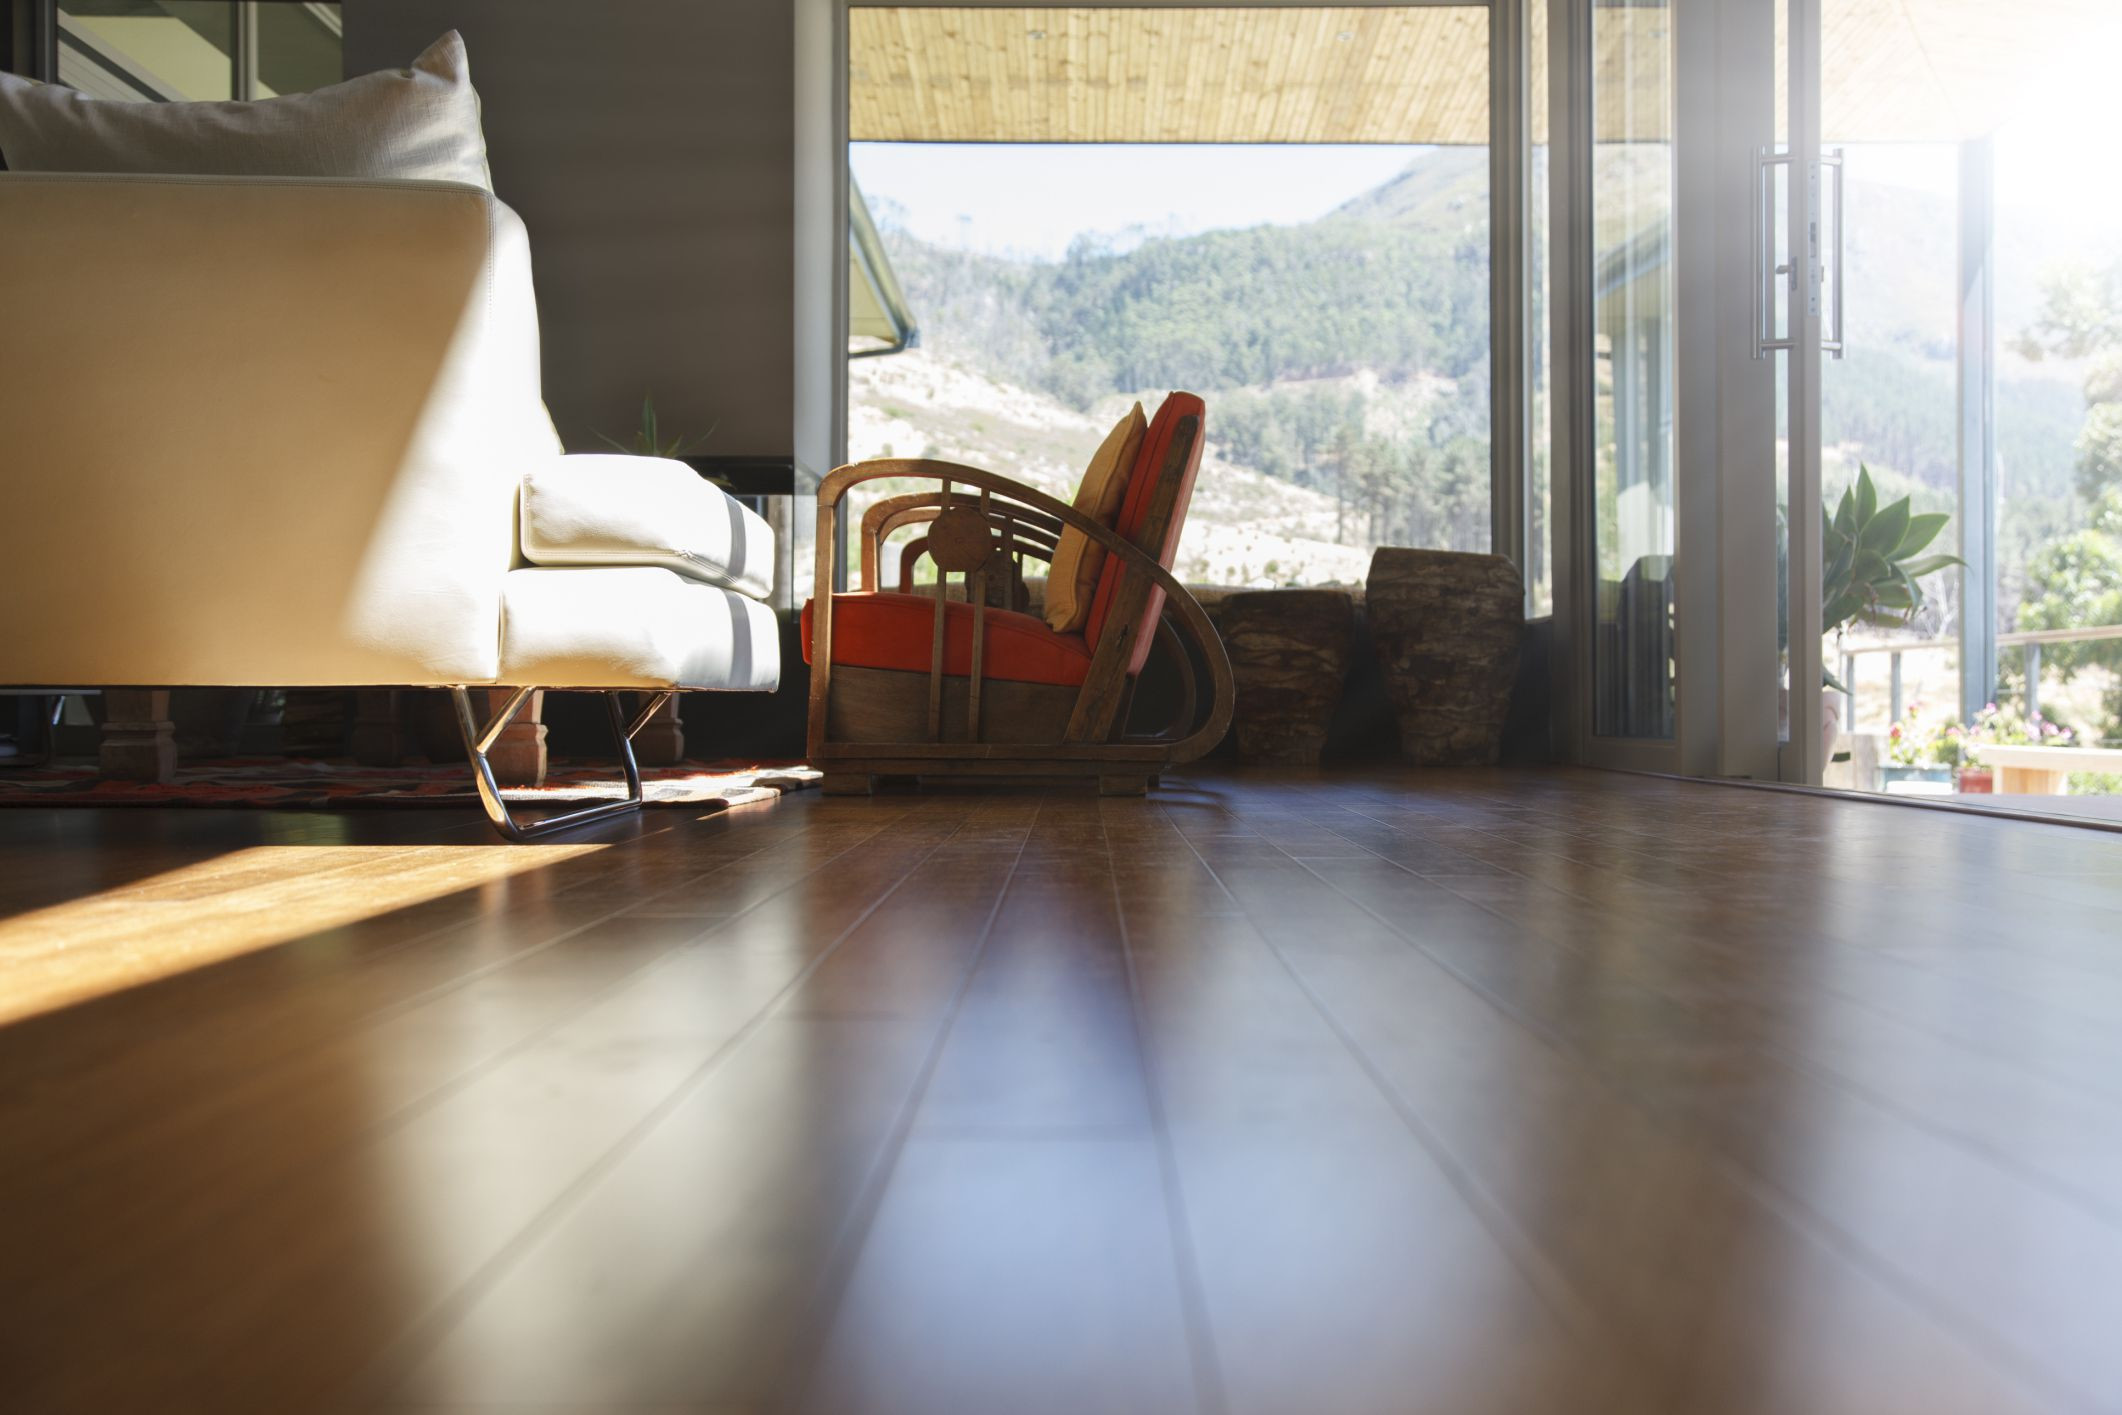 engineered hardwood flooring price per square foot of pros and cons of bellawood flooring from lumber liquidators intended for exotic hardwood flooring 525439899 56a49d3a3df78cf77283453d